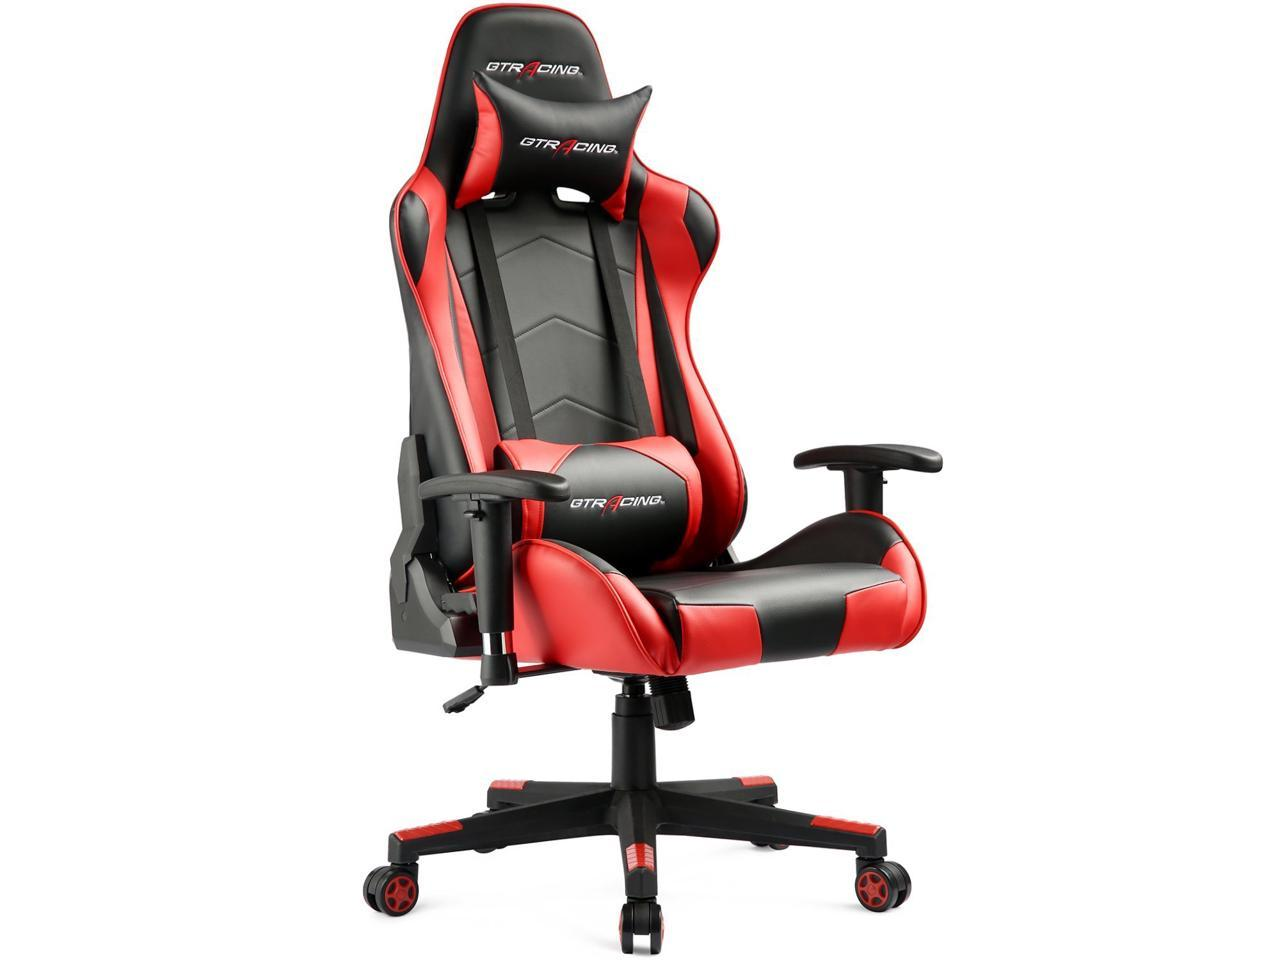 Garage Seat Lens Gtracing Gaming Office Chair Racing Style E Sports Chair With